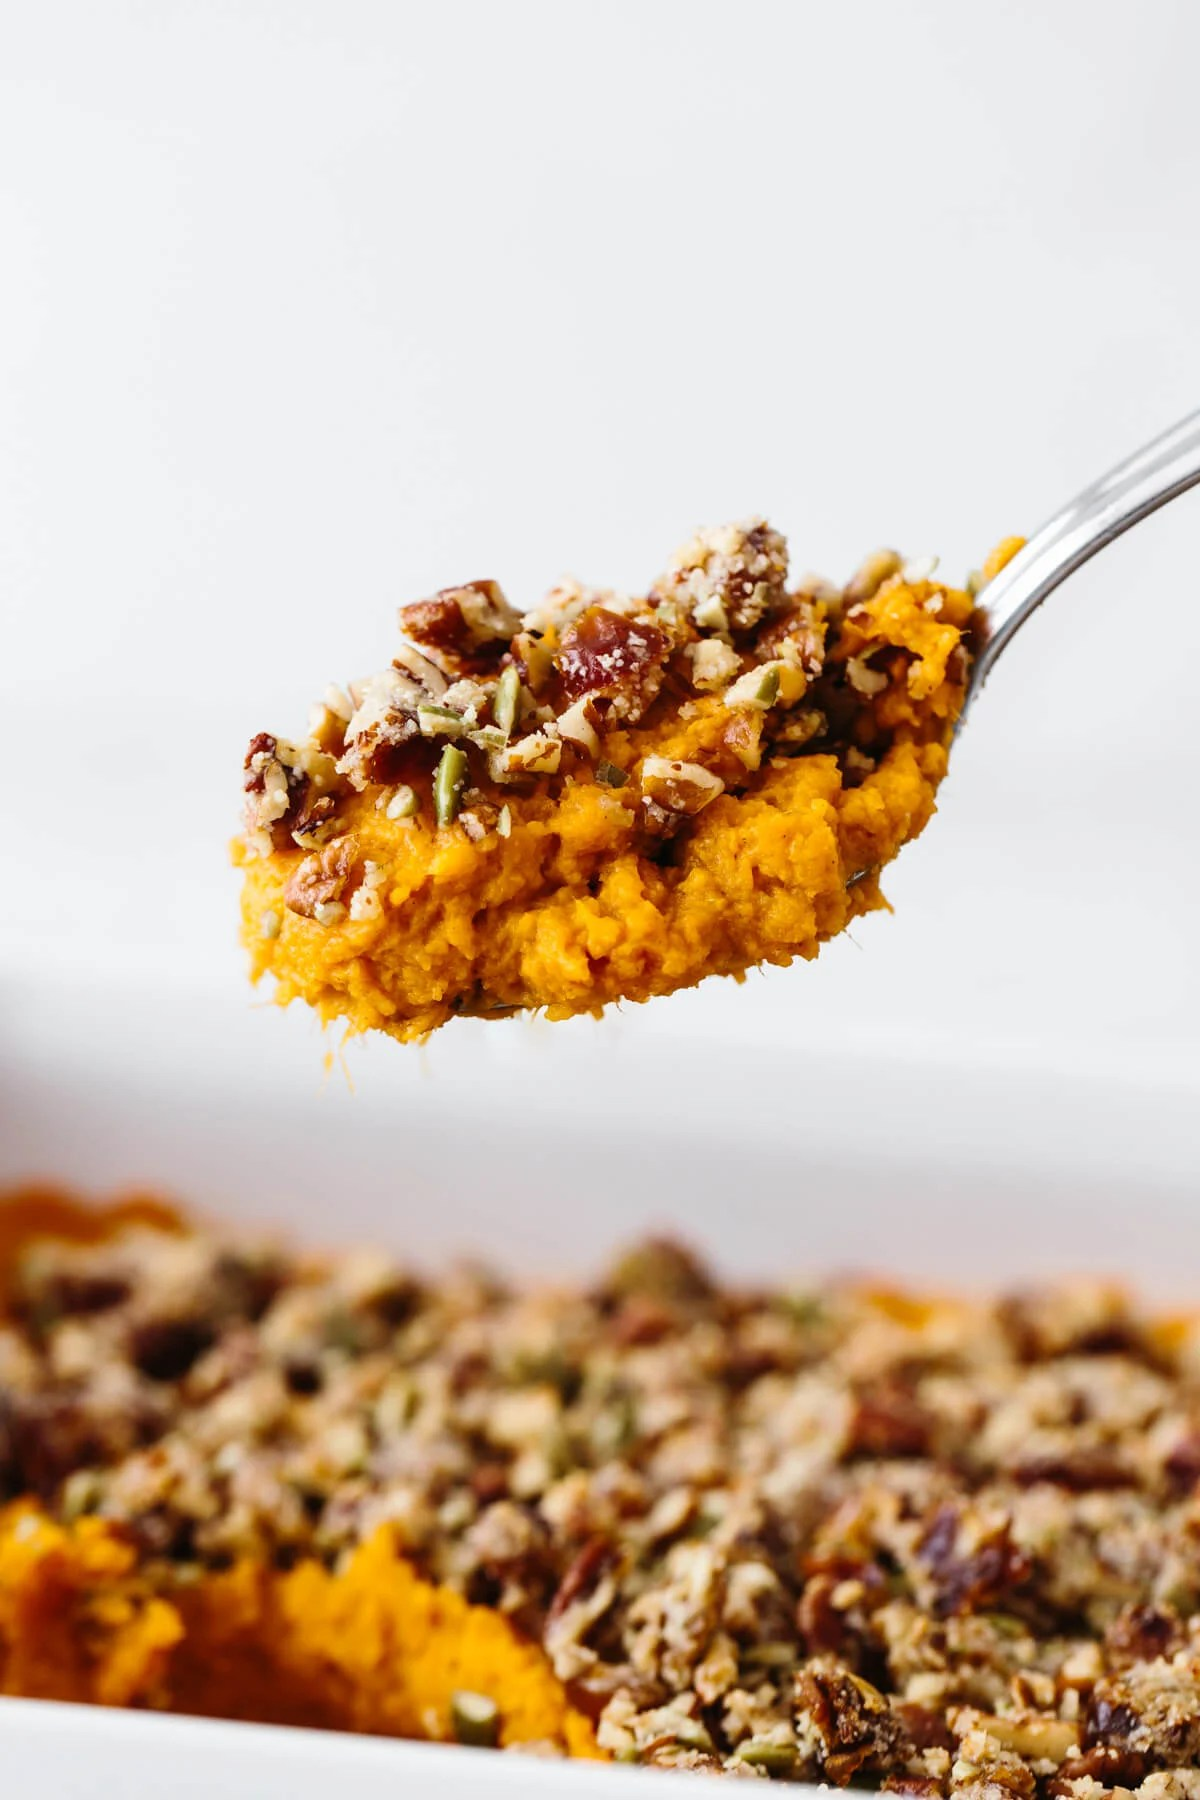 A big scoop of the healthy sweet potato casserole on a spoon.